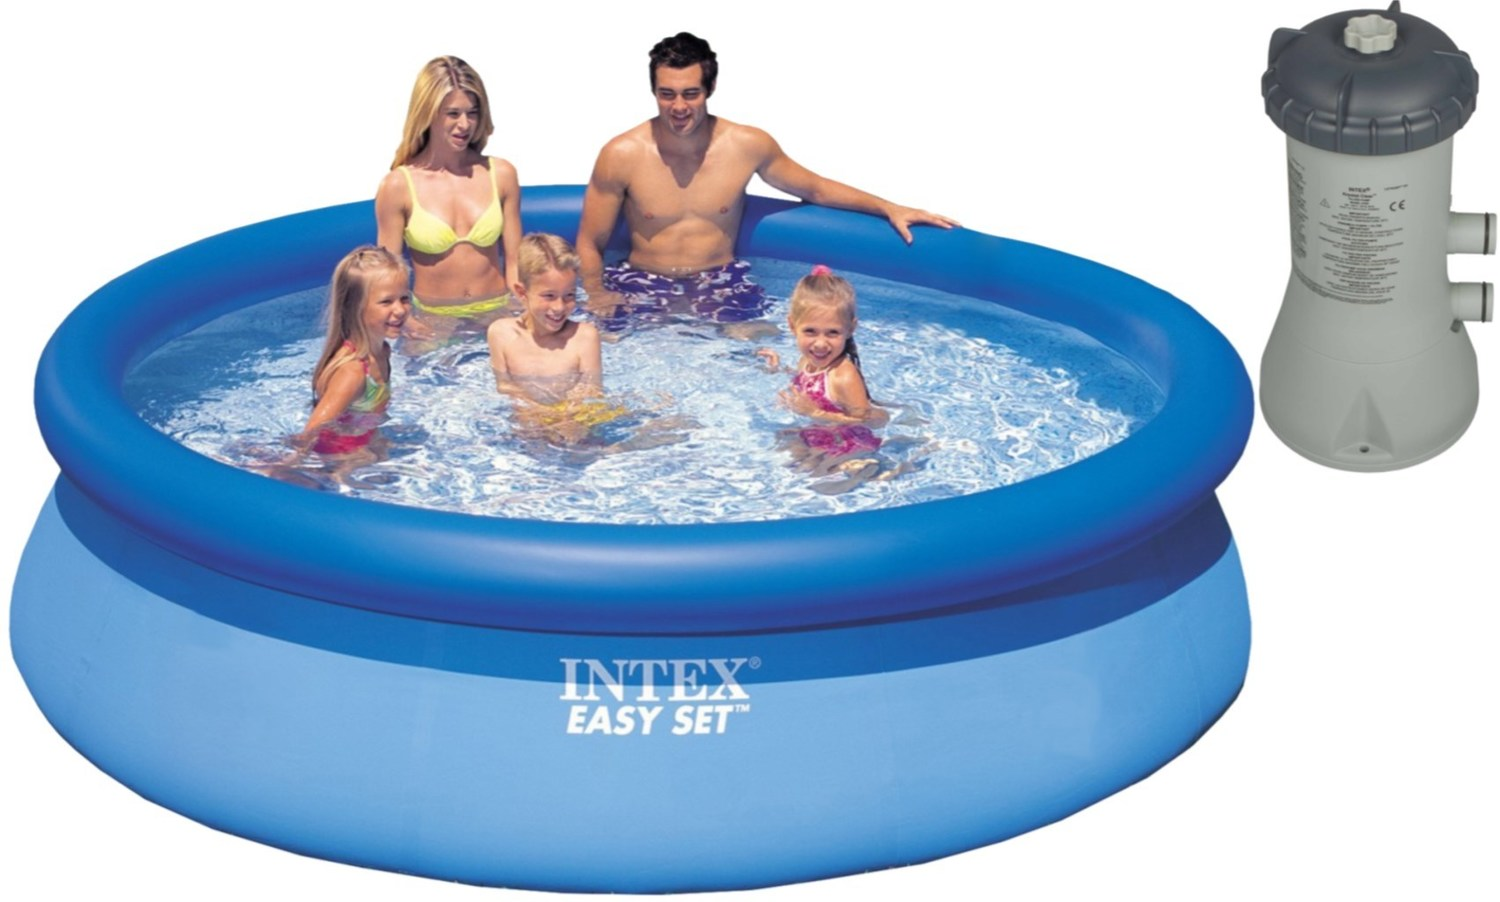 Pool Ohne Filterpumpe Intex Easy Set Pool 457x91 Cm Mit Filterpumpe